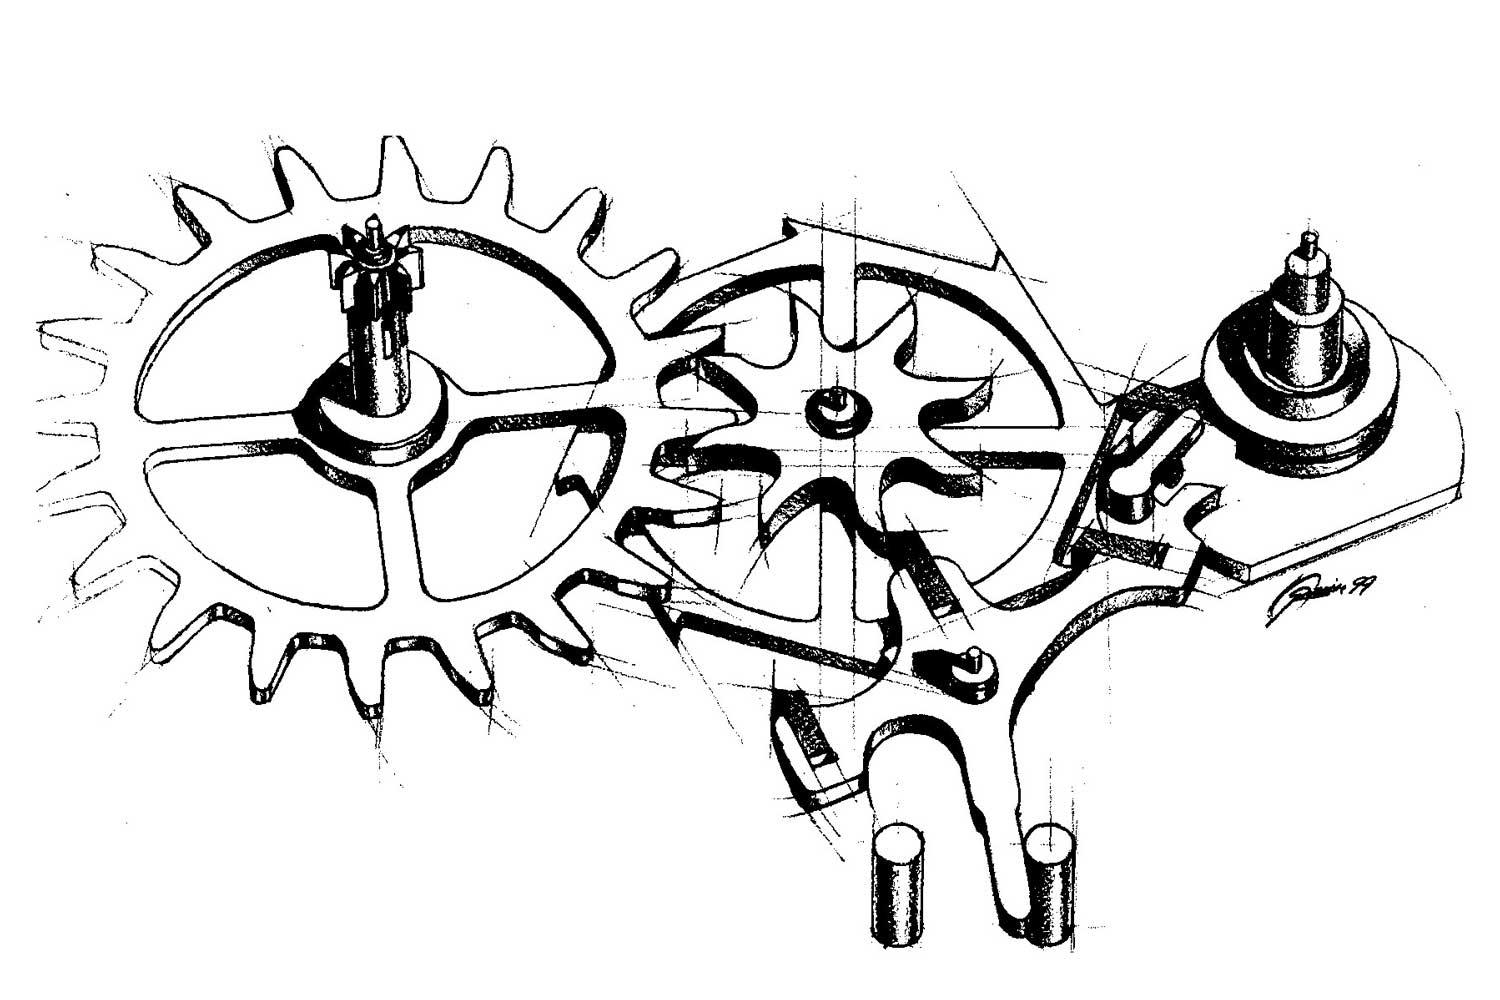 A drawing of the co-axial escapement